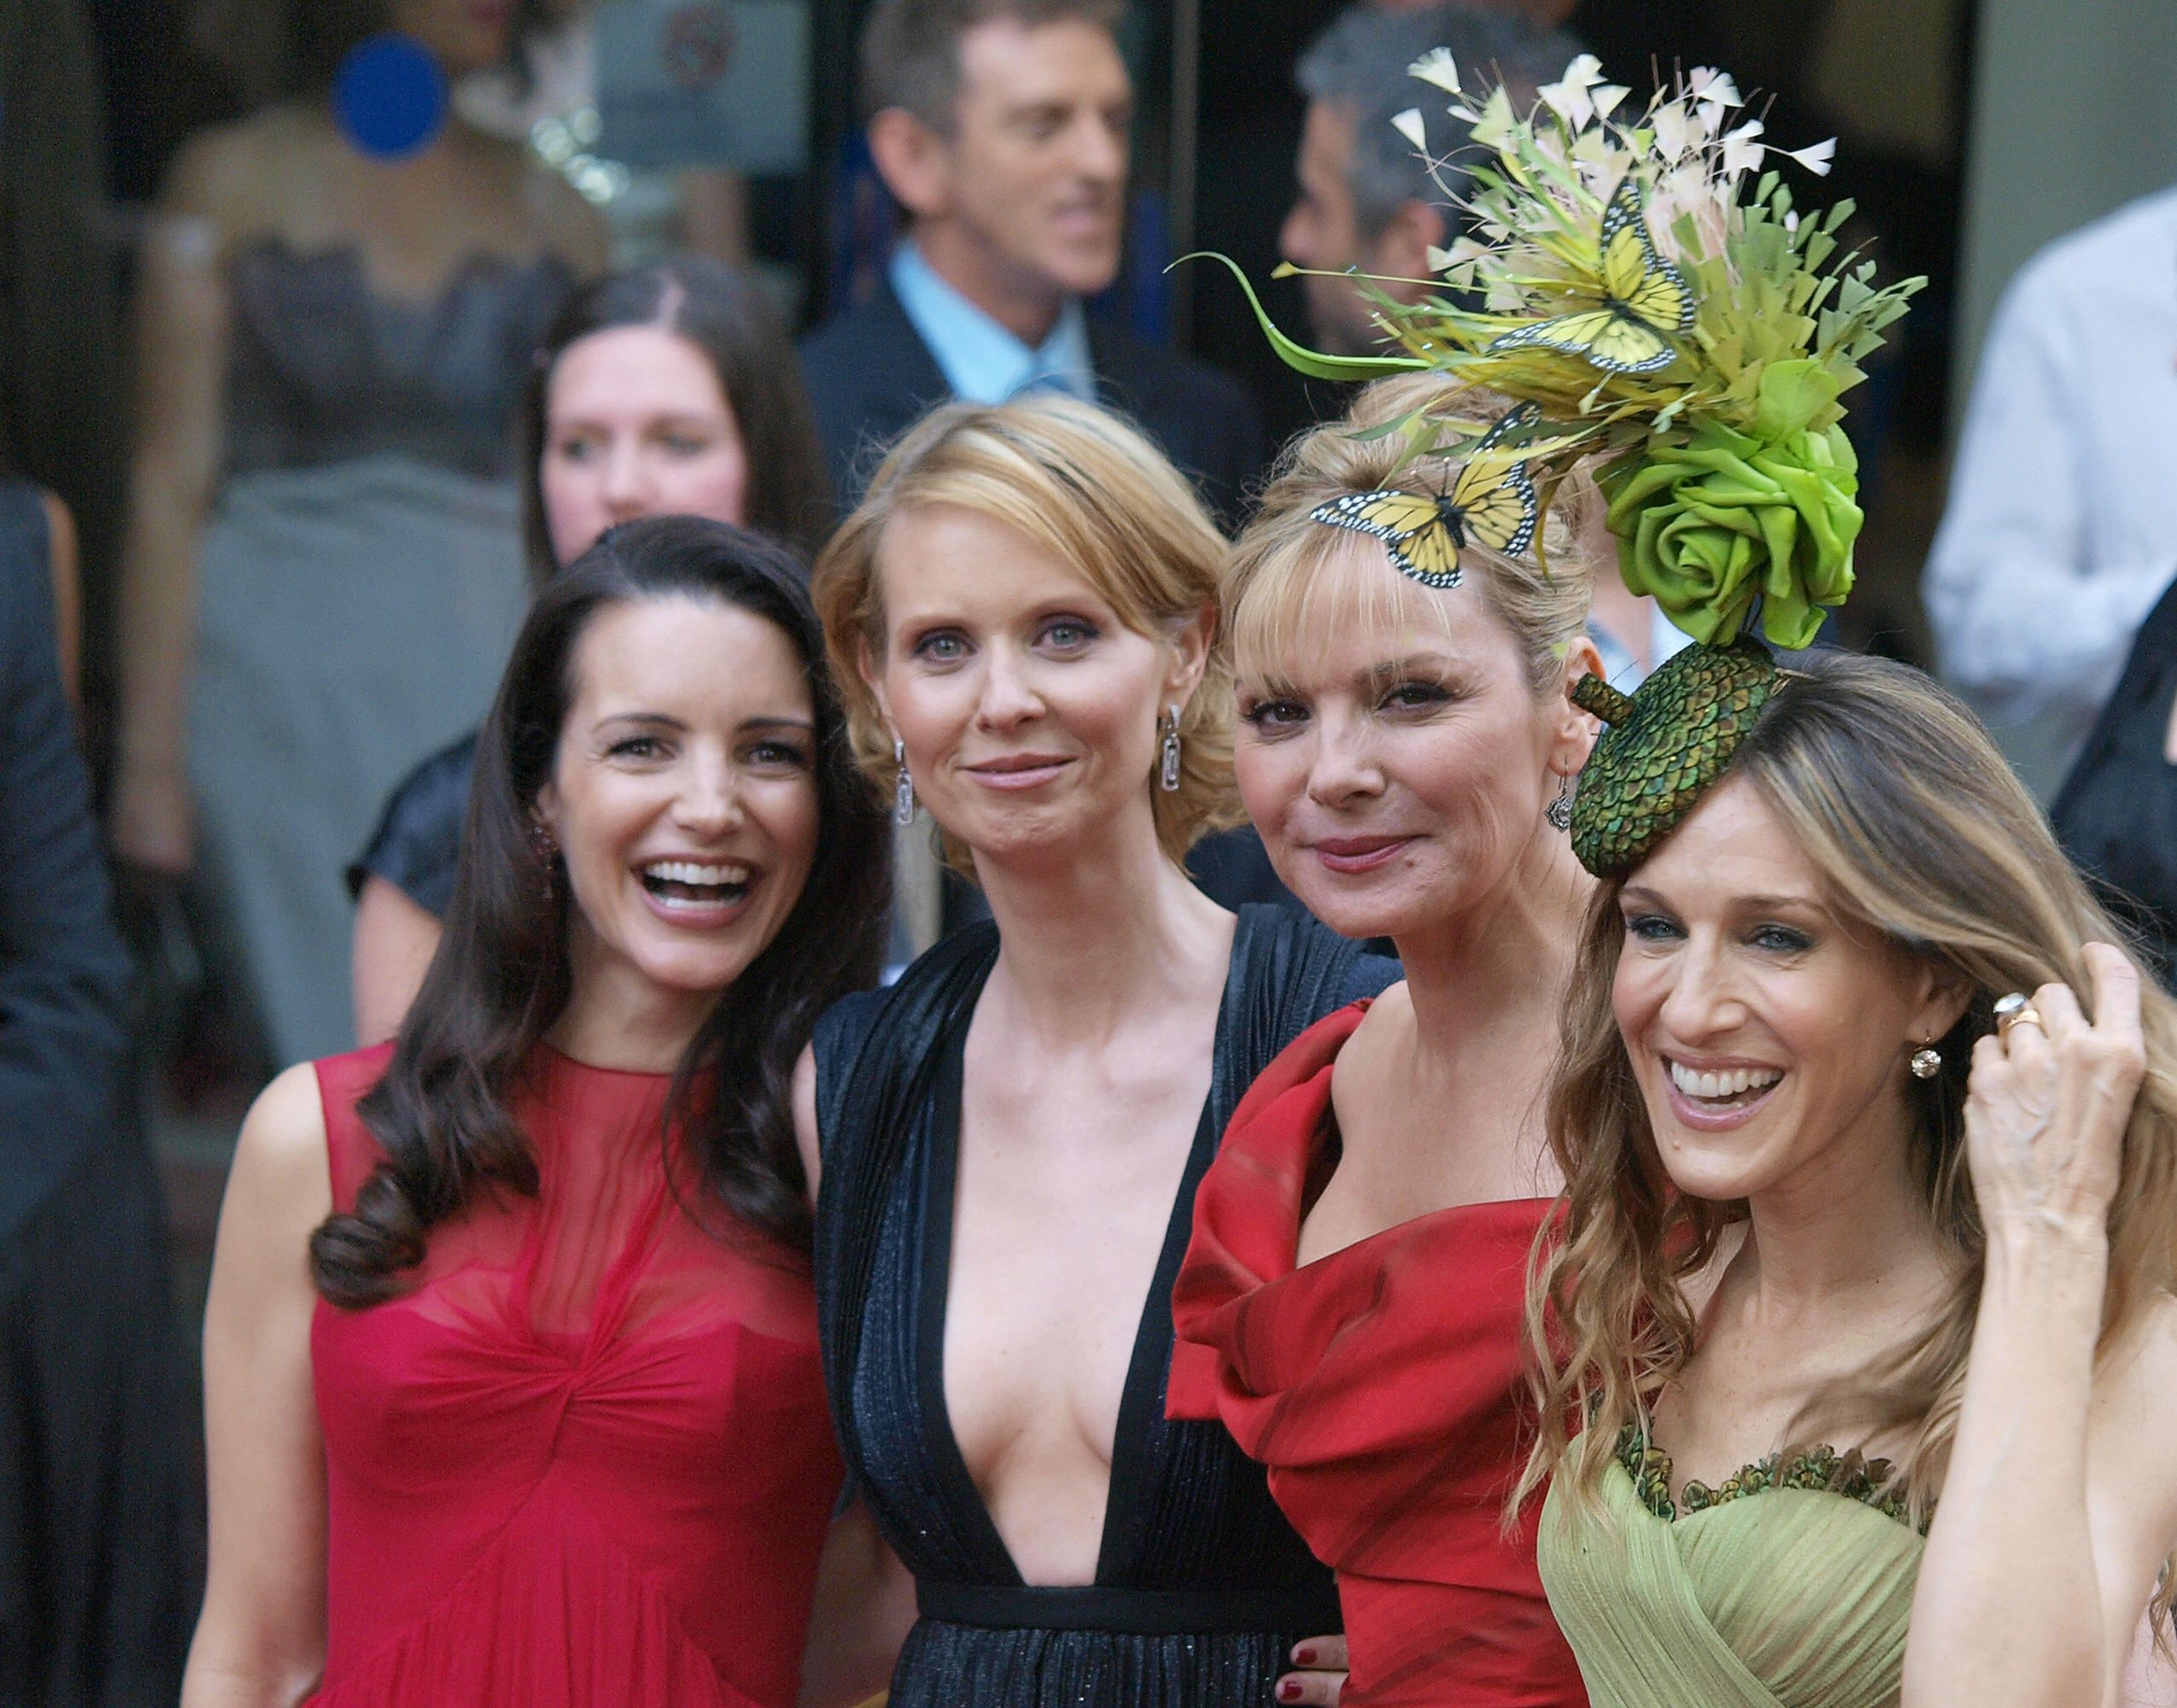 A Definitive Timeline of Sarah Jessica Parker and Kim Cattrall's Sex and the City Feud